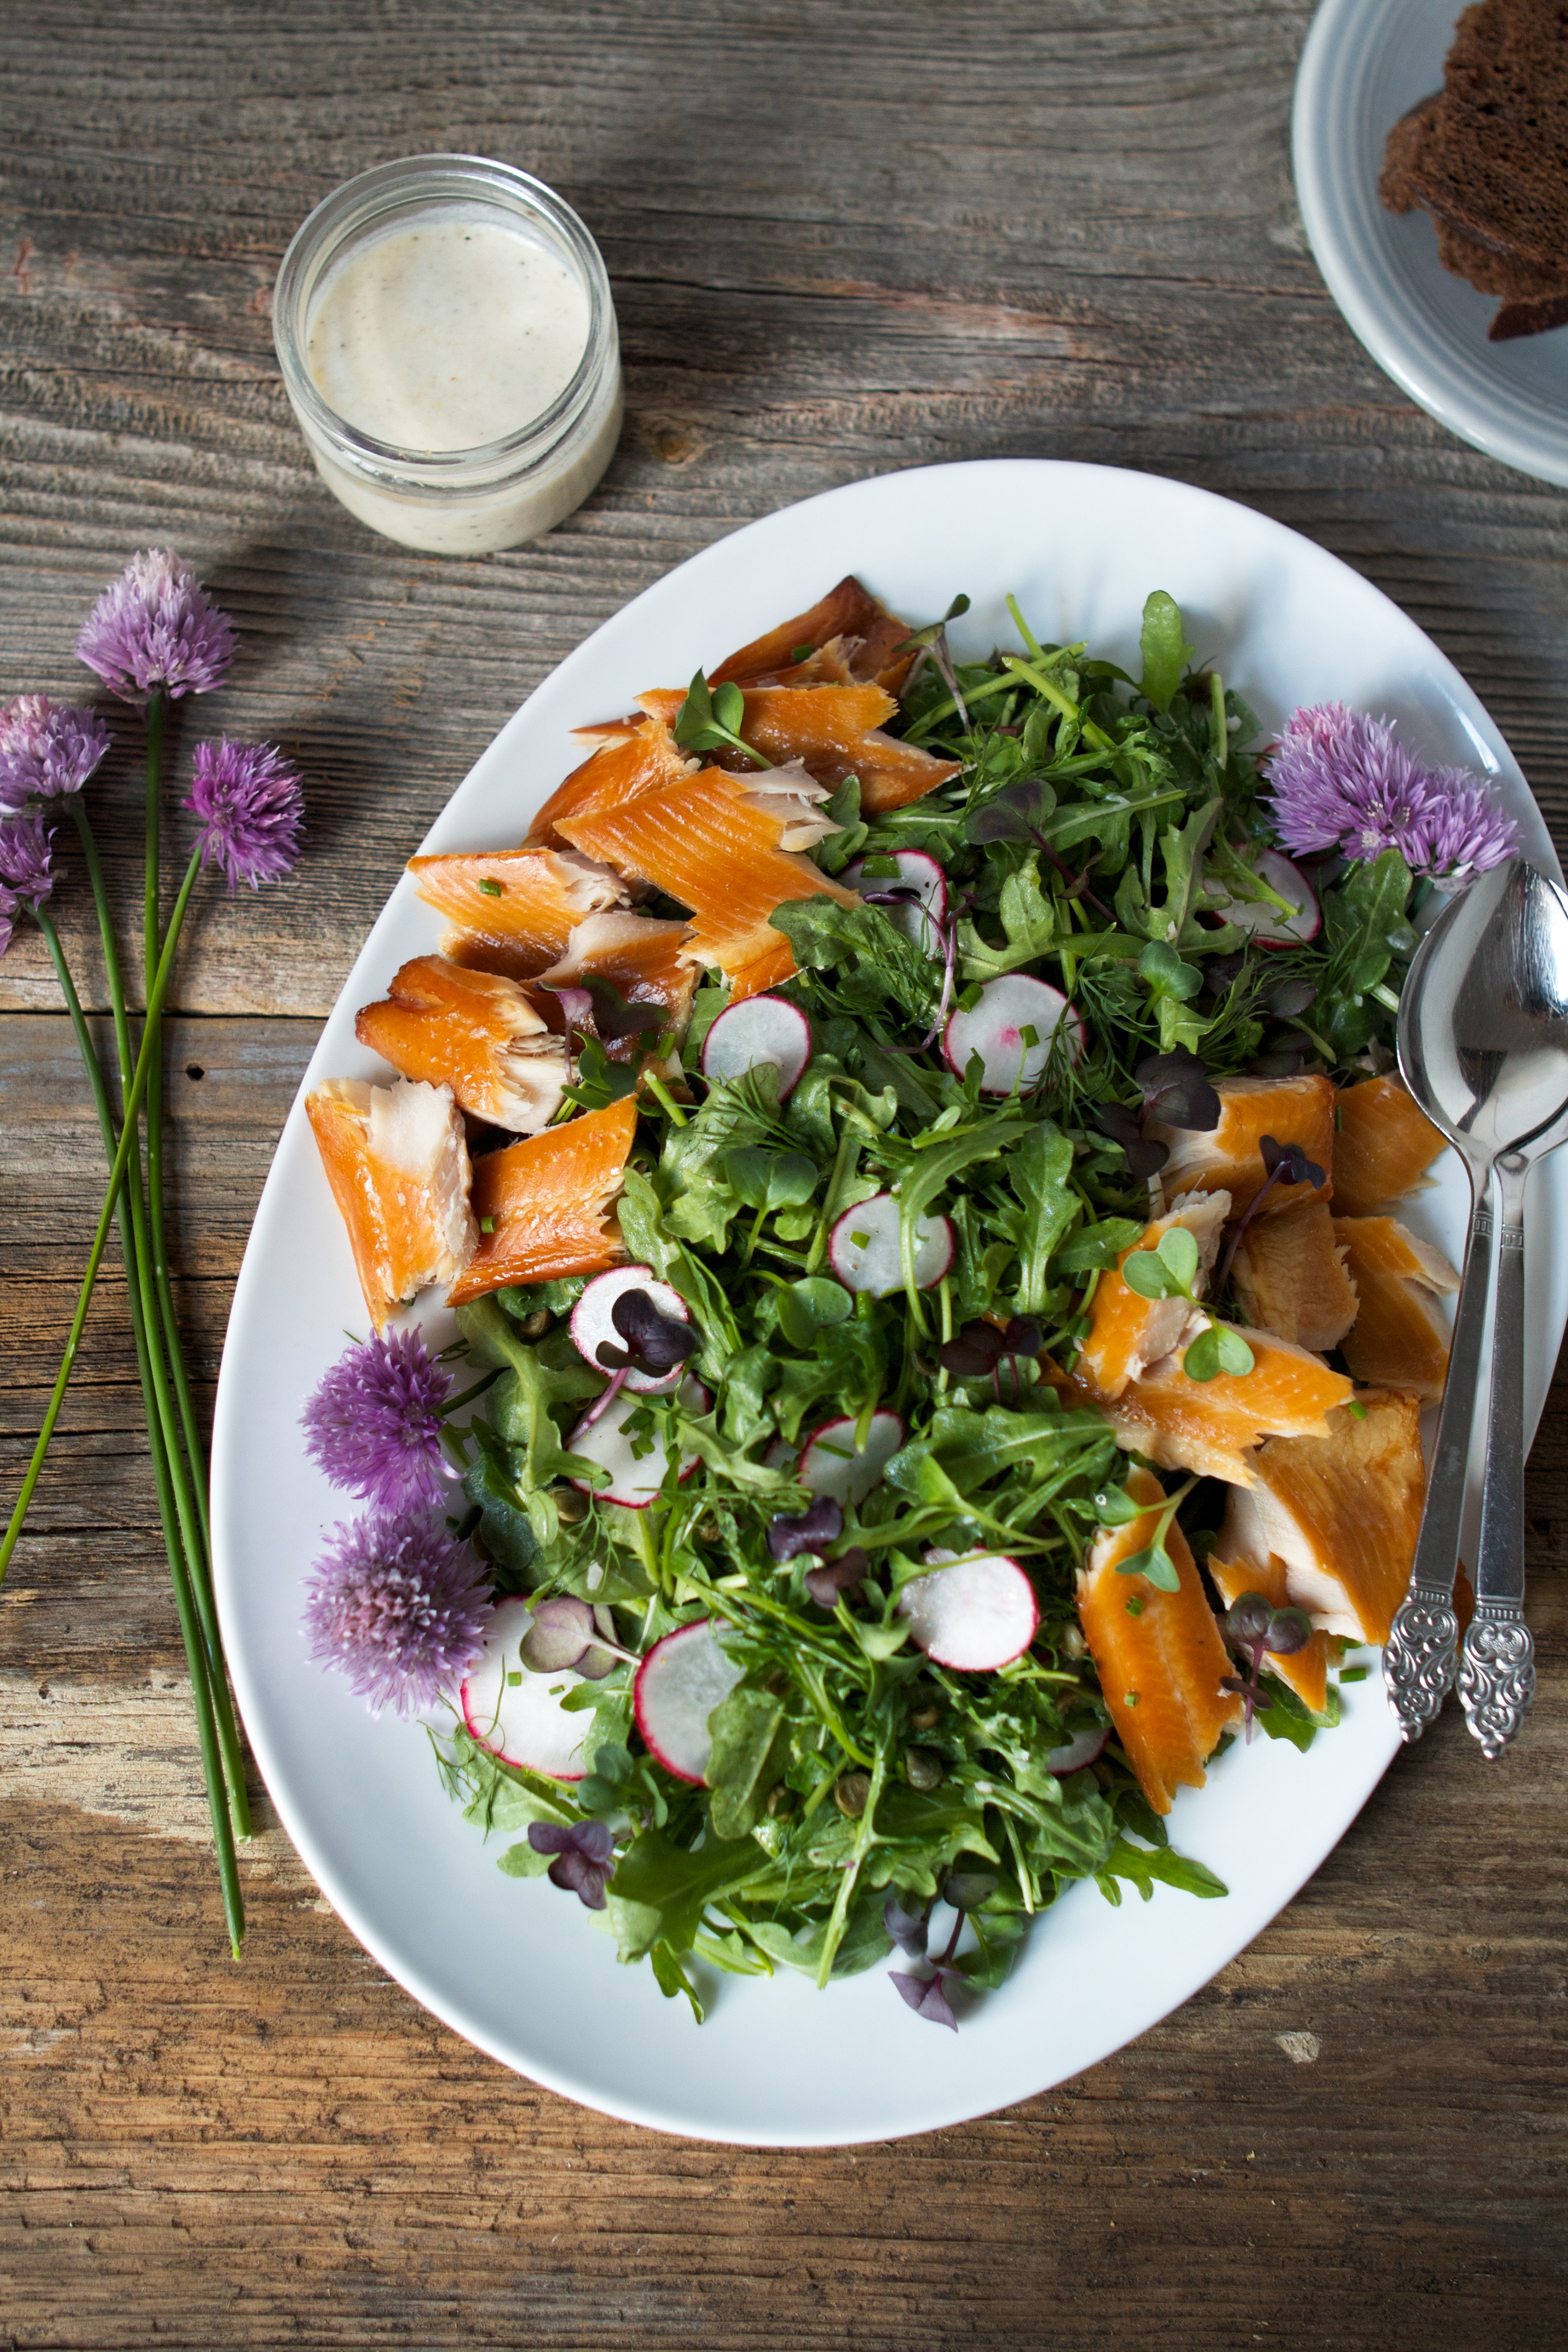 Spring green salad with smoked trout on a large white plate set on a worn wood background.